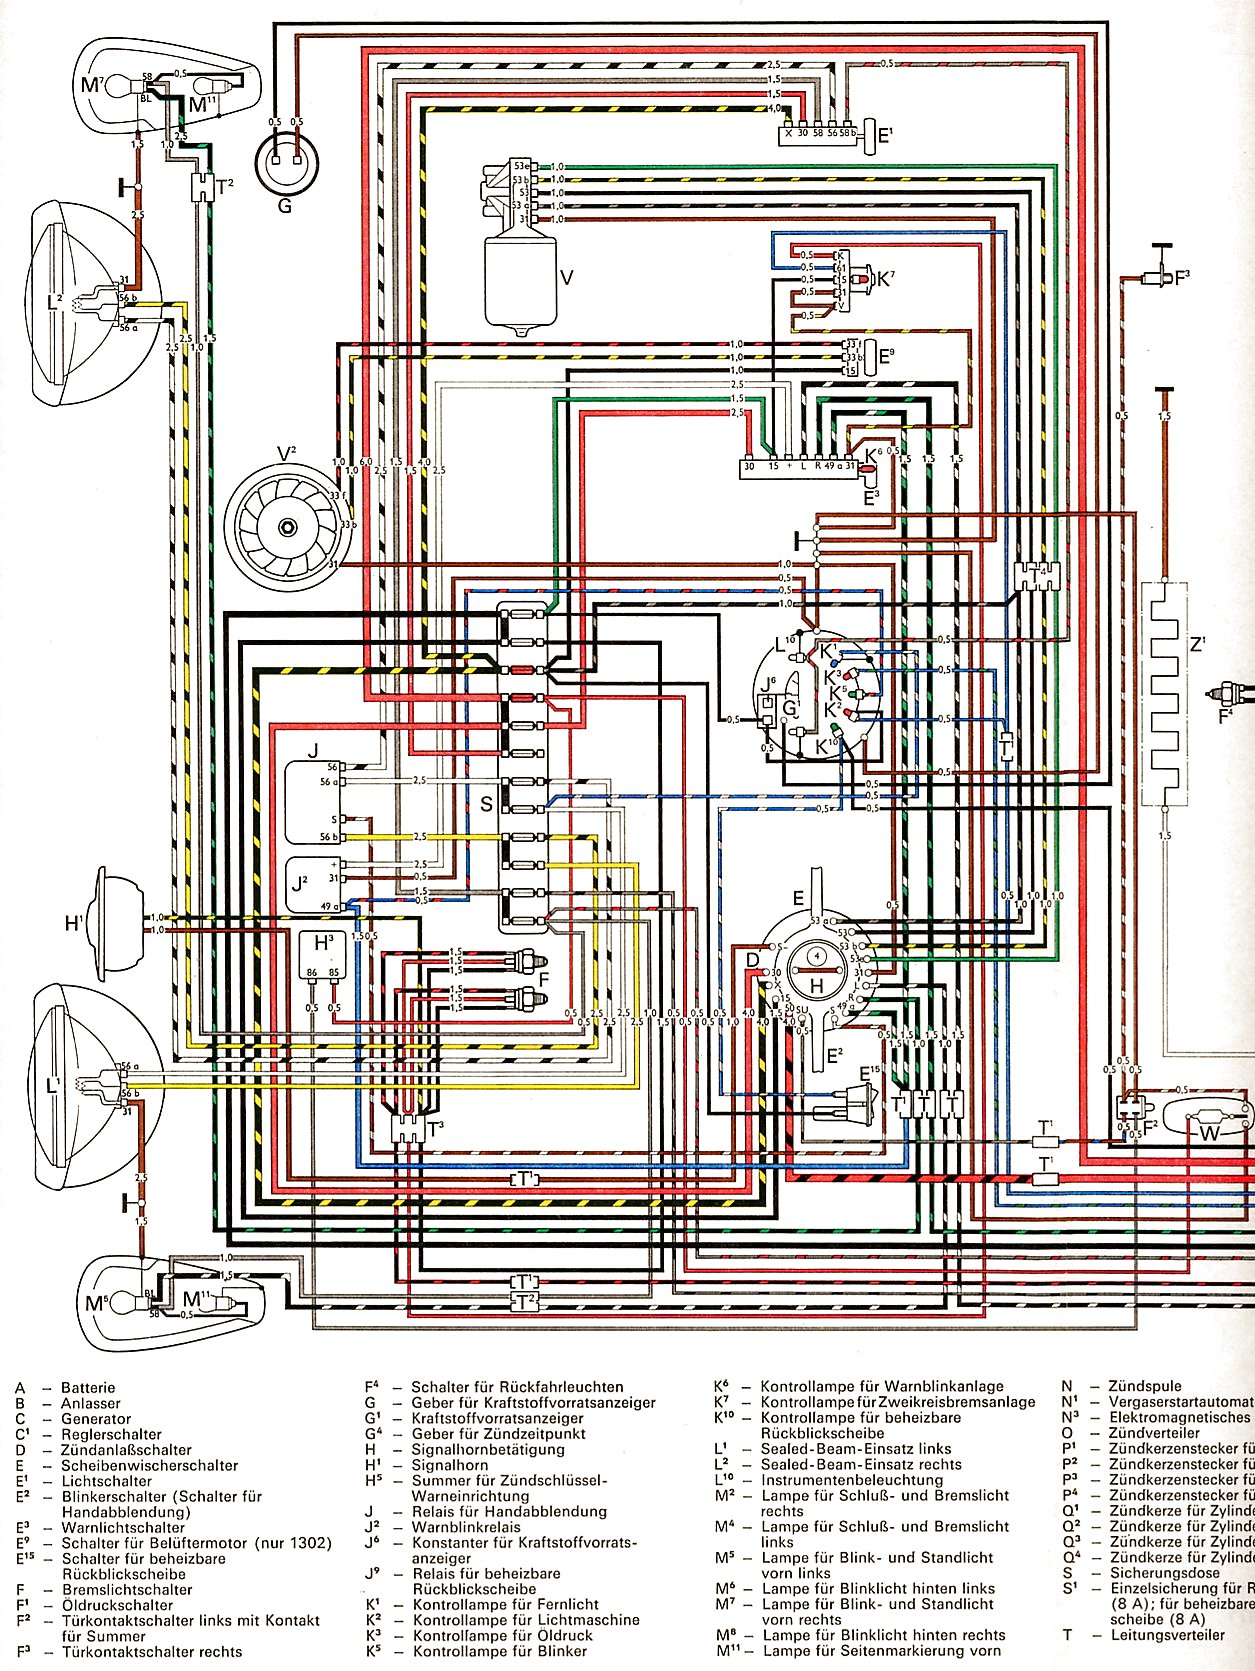 1300_and_1302_USA_from_August_1971 1 wiring help 1974 vw beetle shoptalkforums com 1973 vw beetle wiring diagram at n-0.co